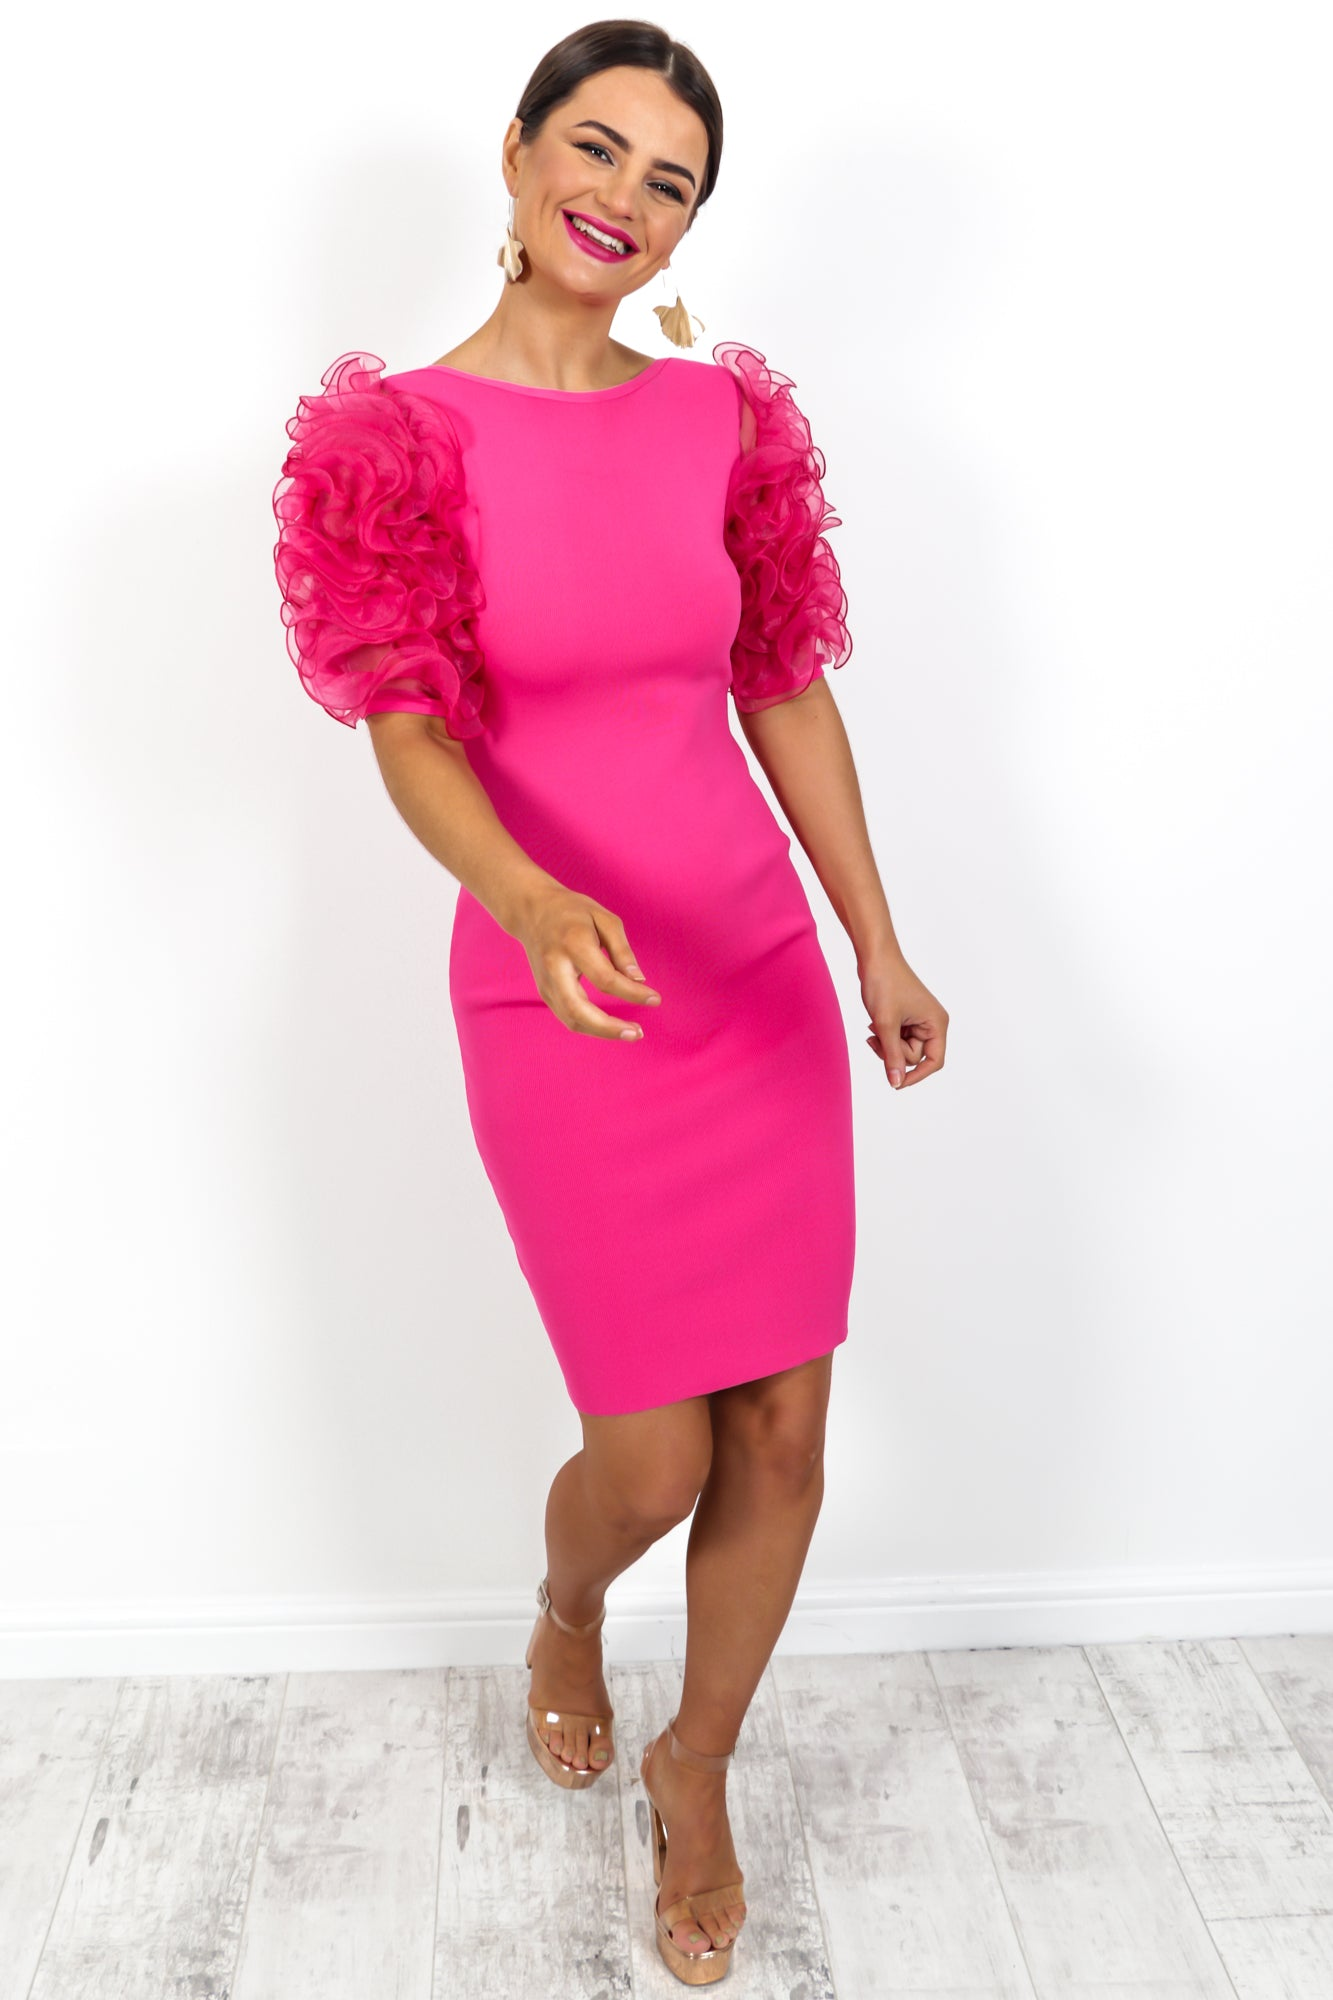 Whipped Dream - Dress In HOT PINK